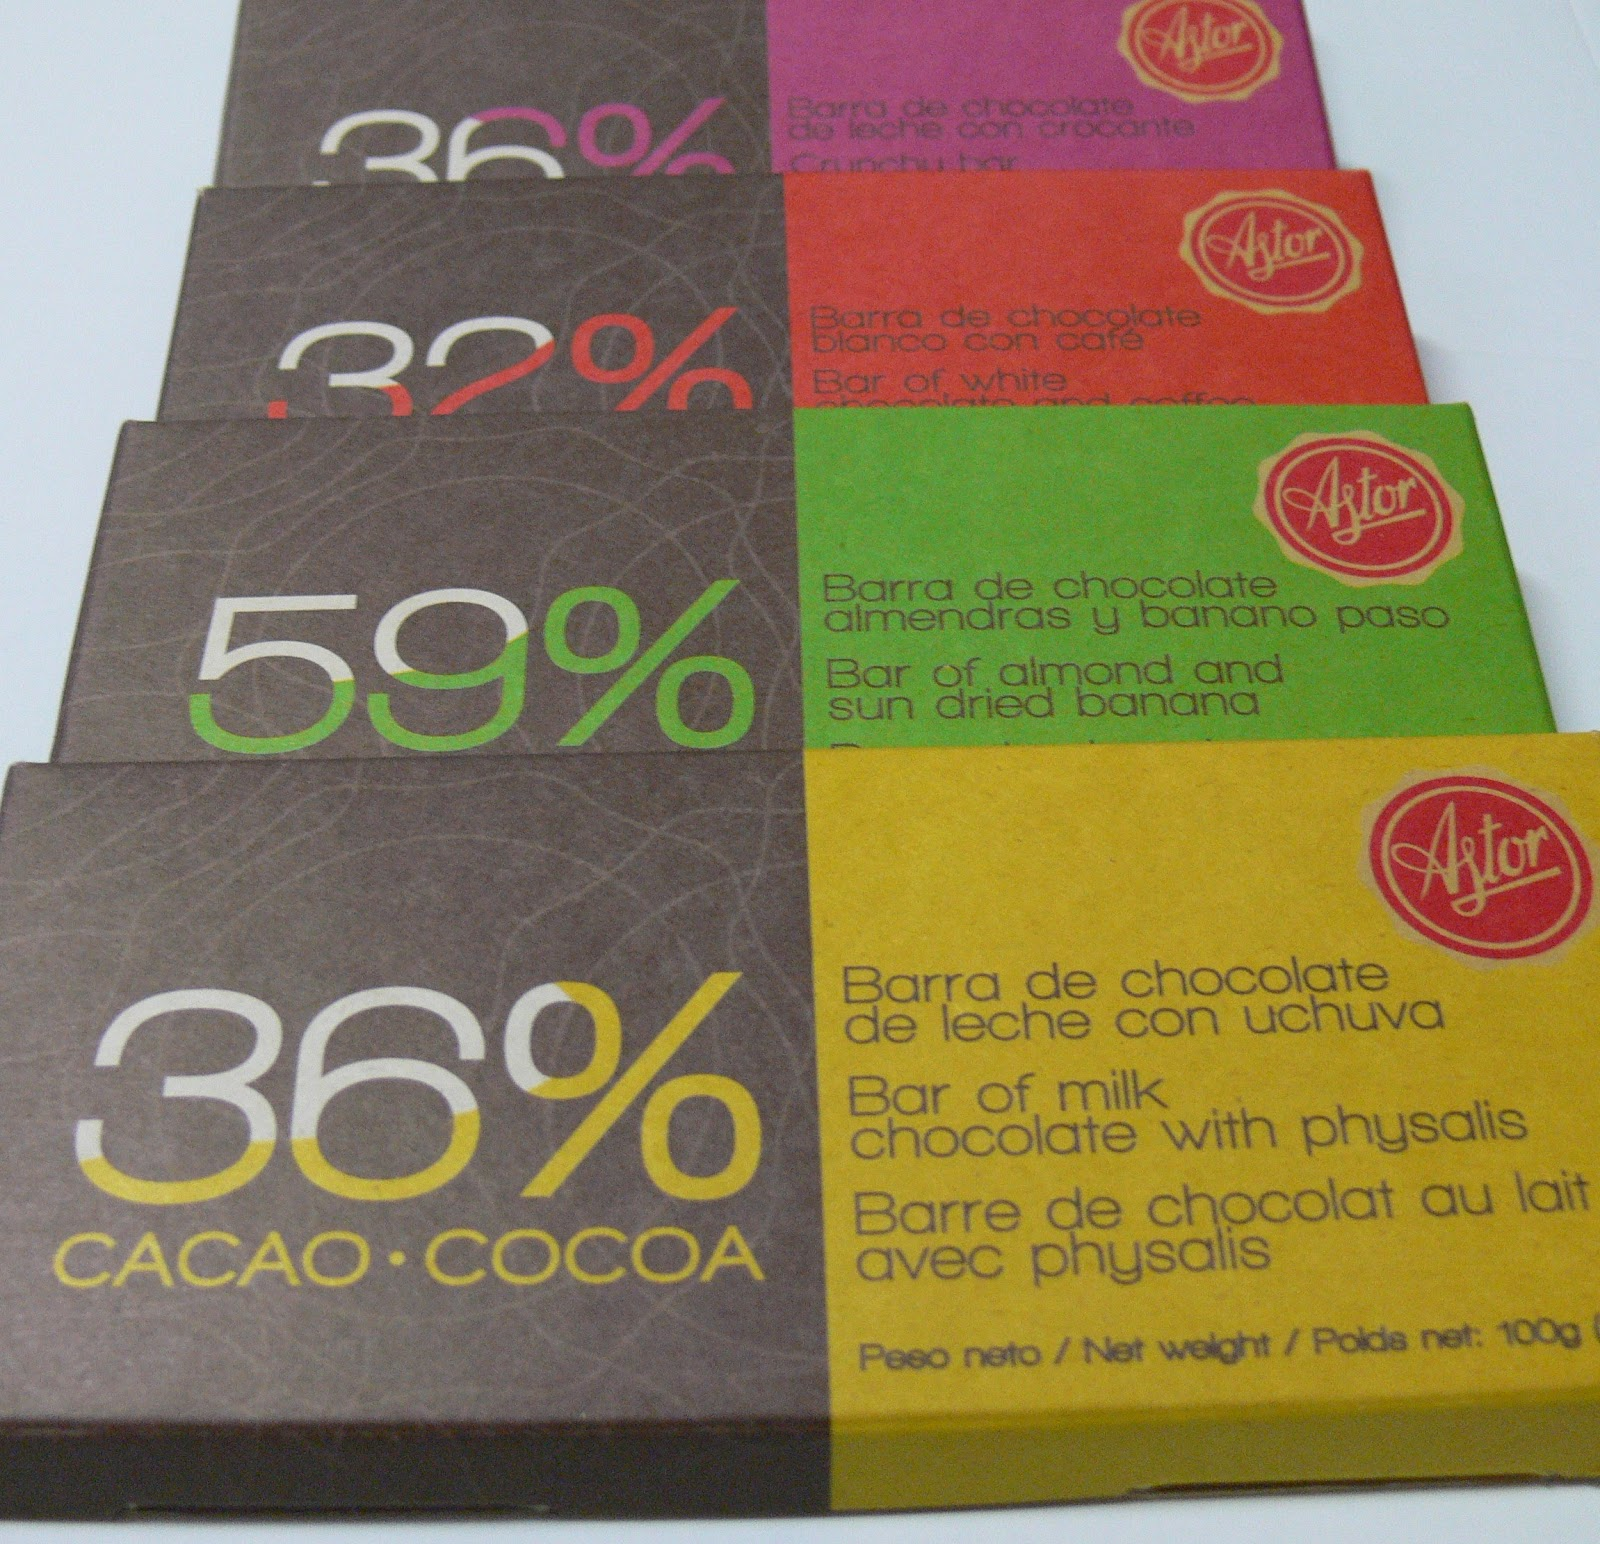 The Ultimate Chocolate Blog: A Taste of Colombia with a Twist of ...